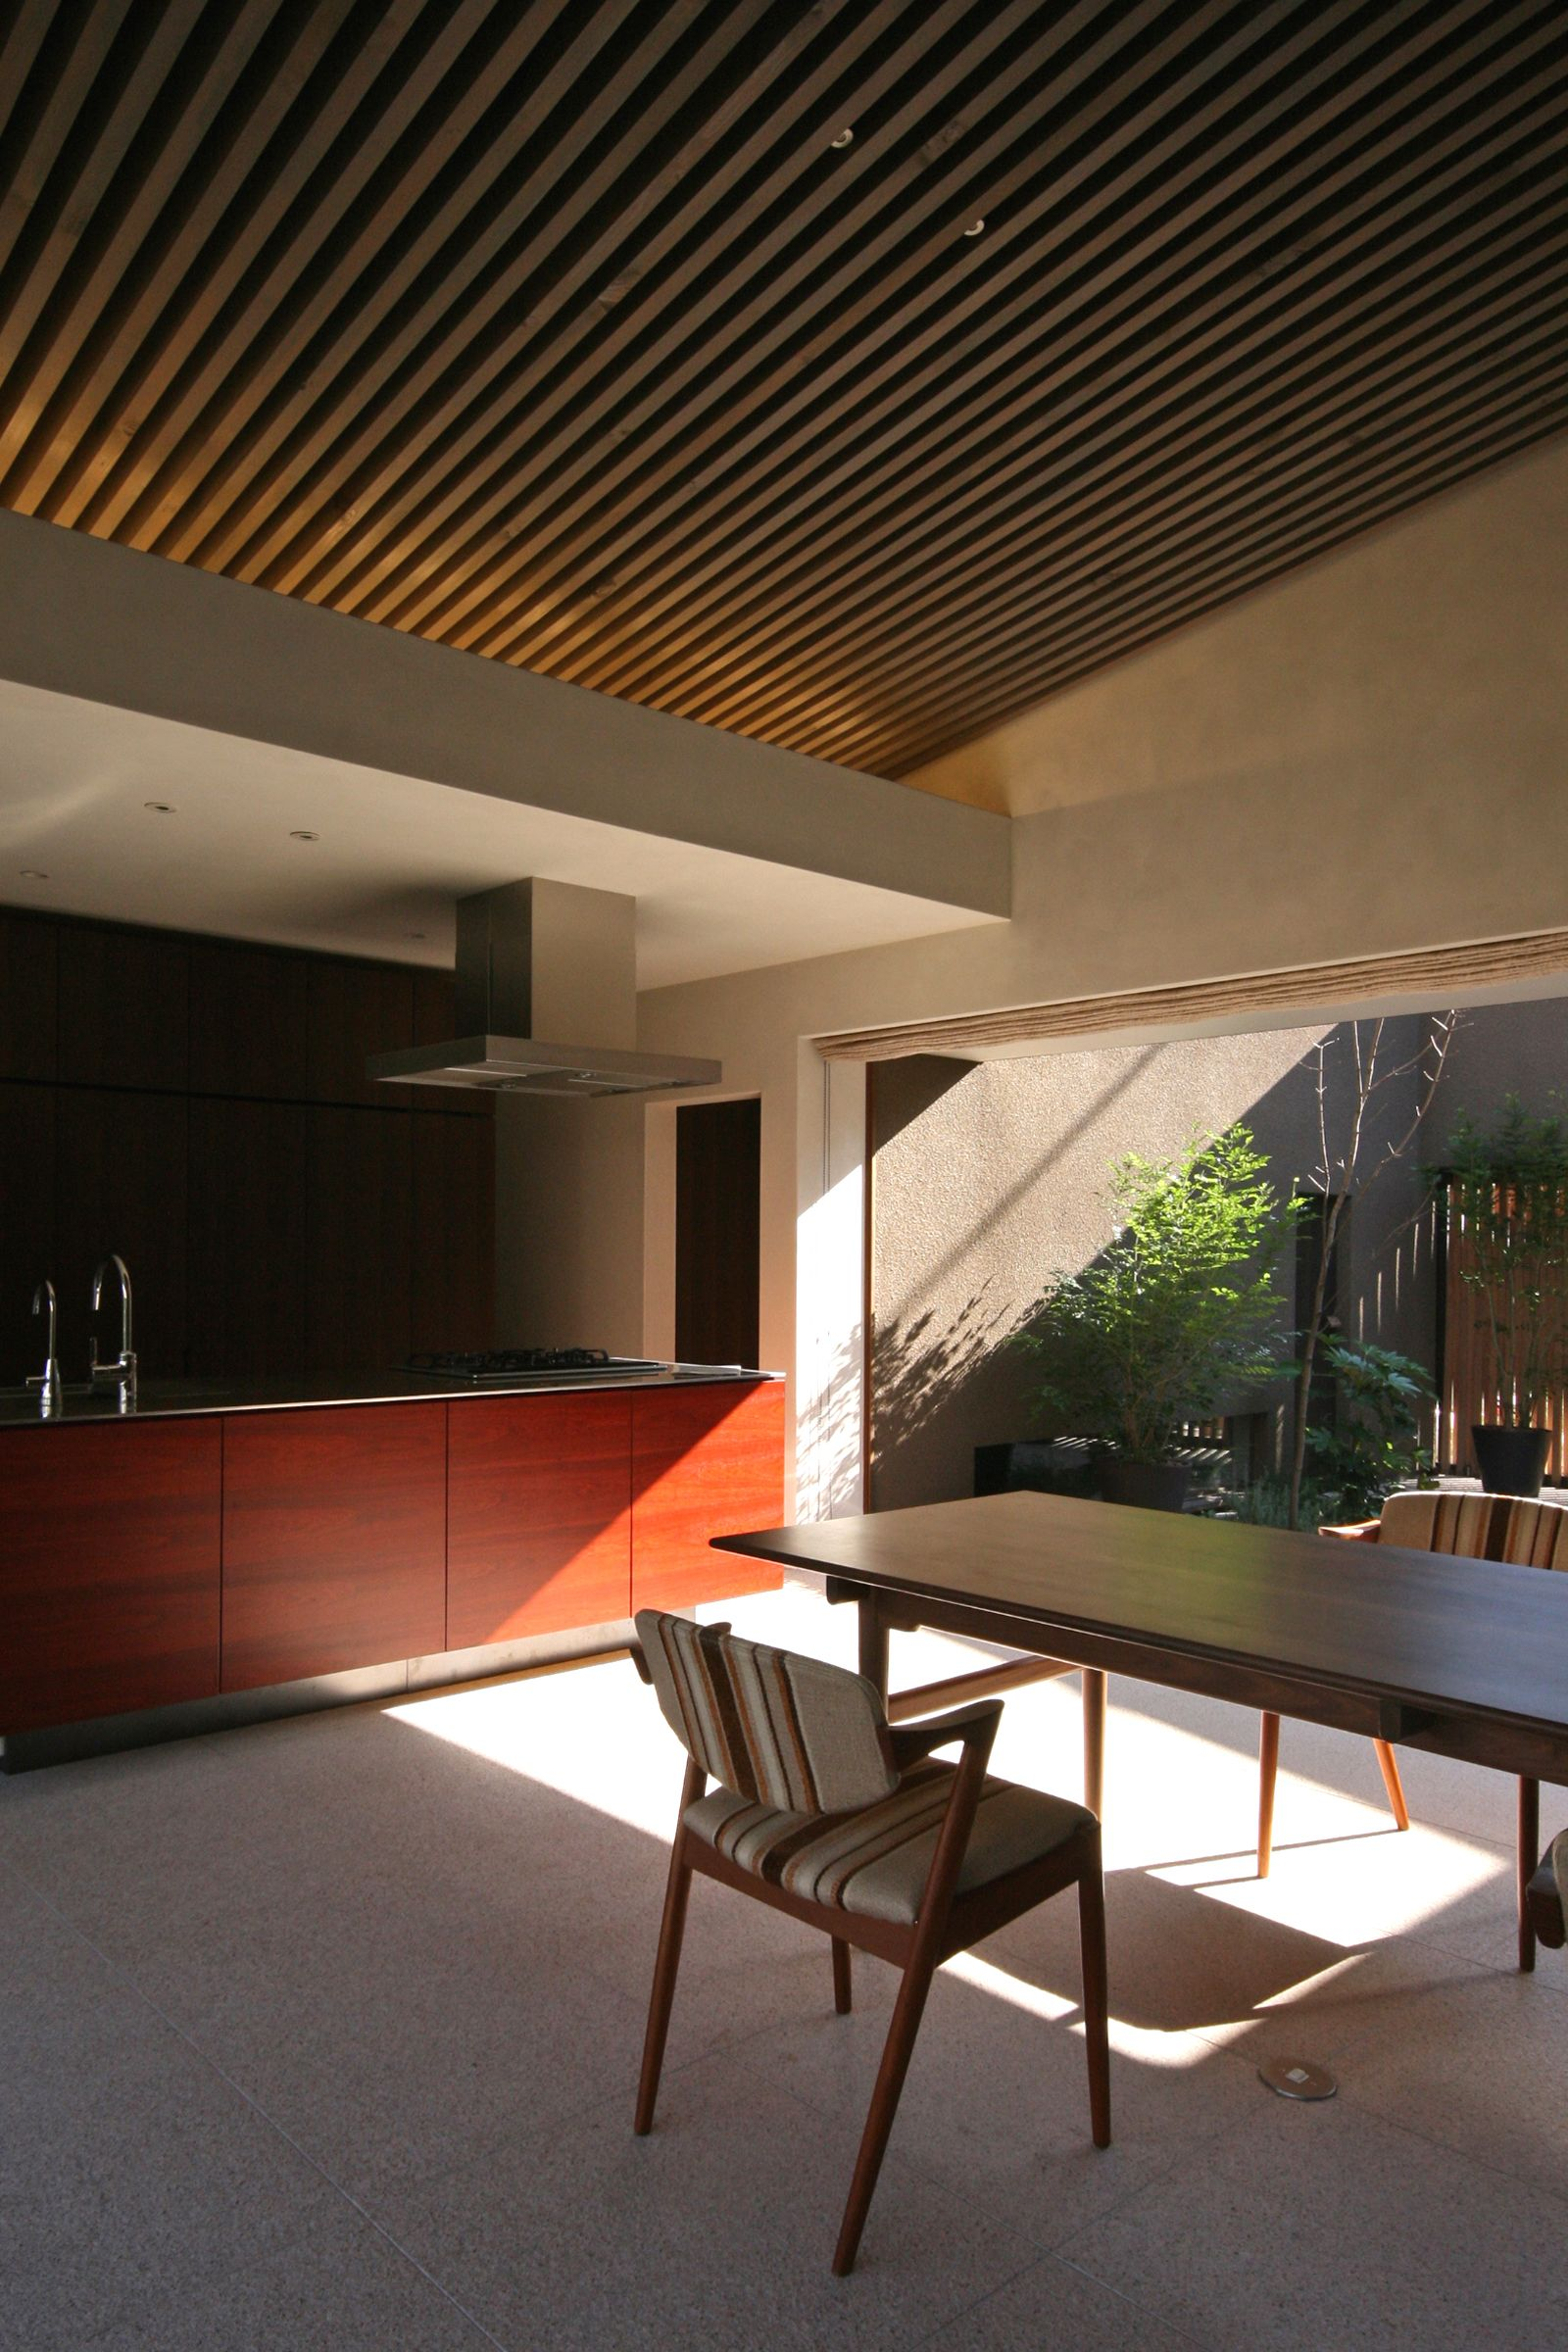 T house in Taishido by S.O.Y.LABO.